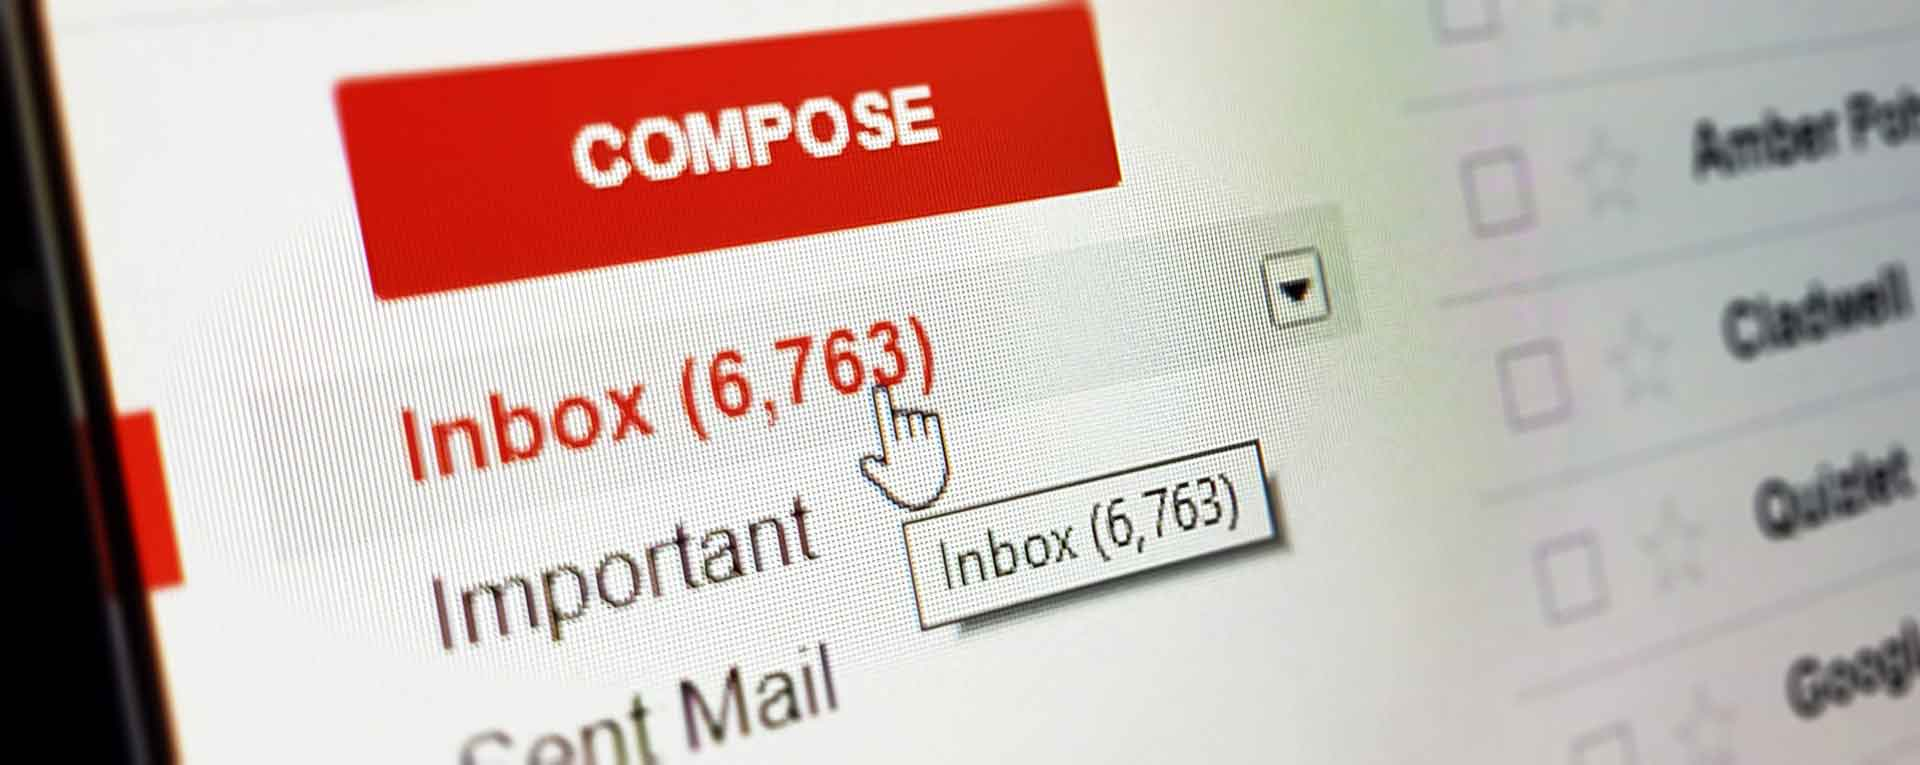 How To Transfer Gmail Messages To Other Email Address